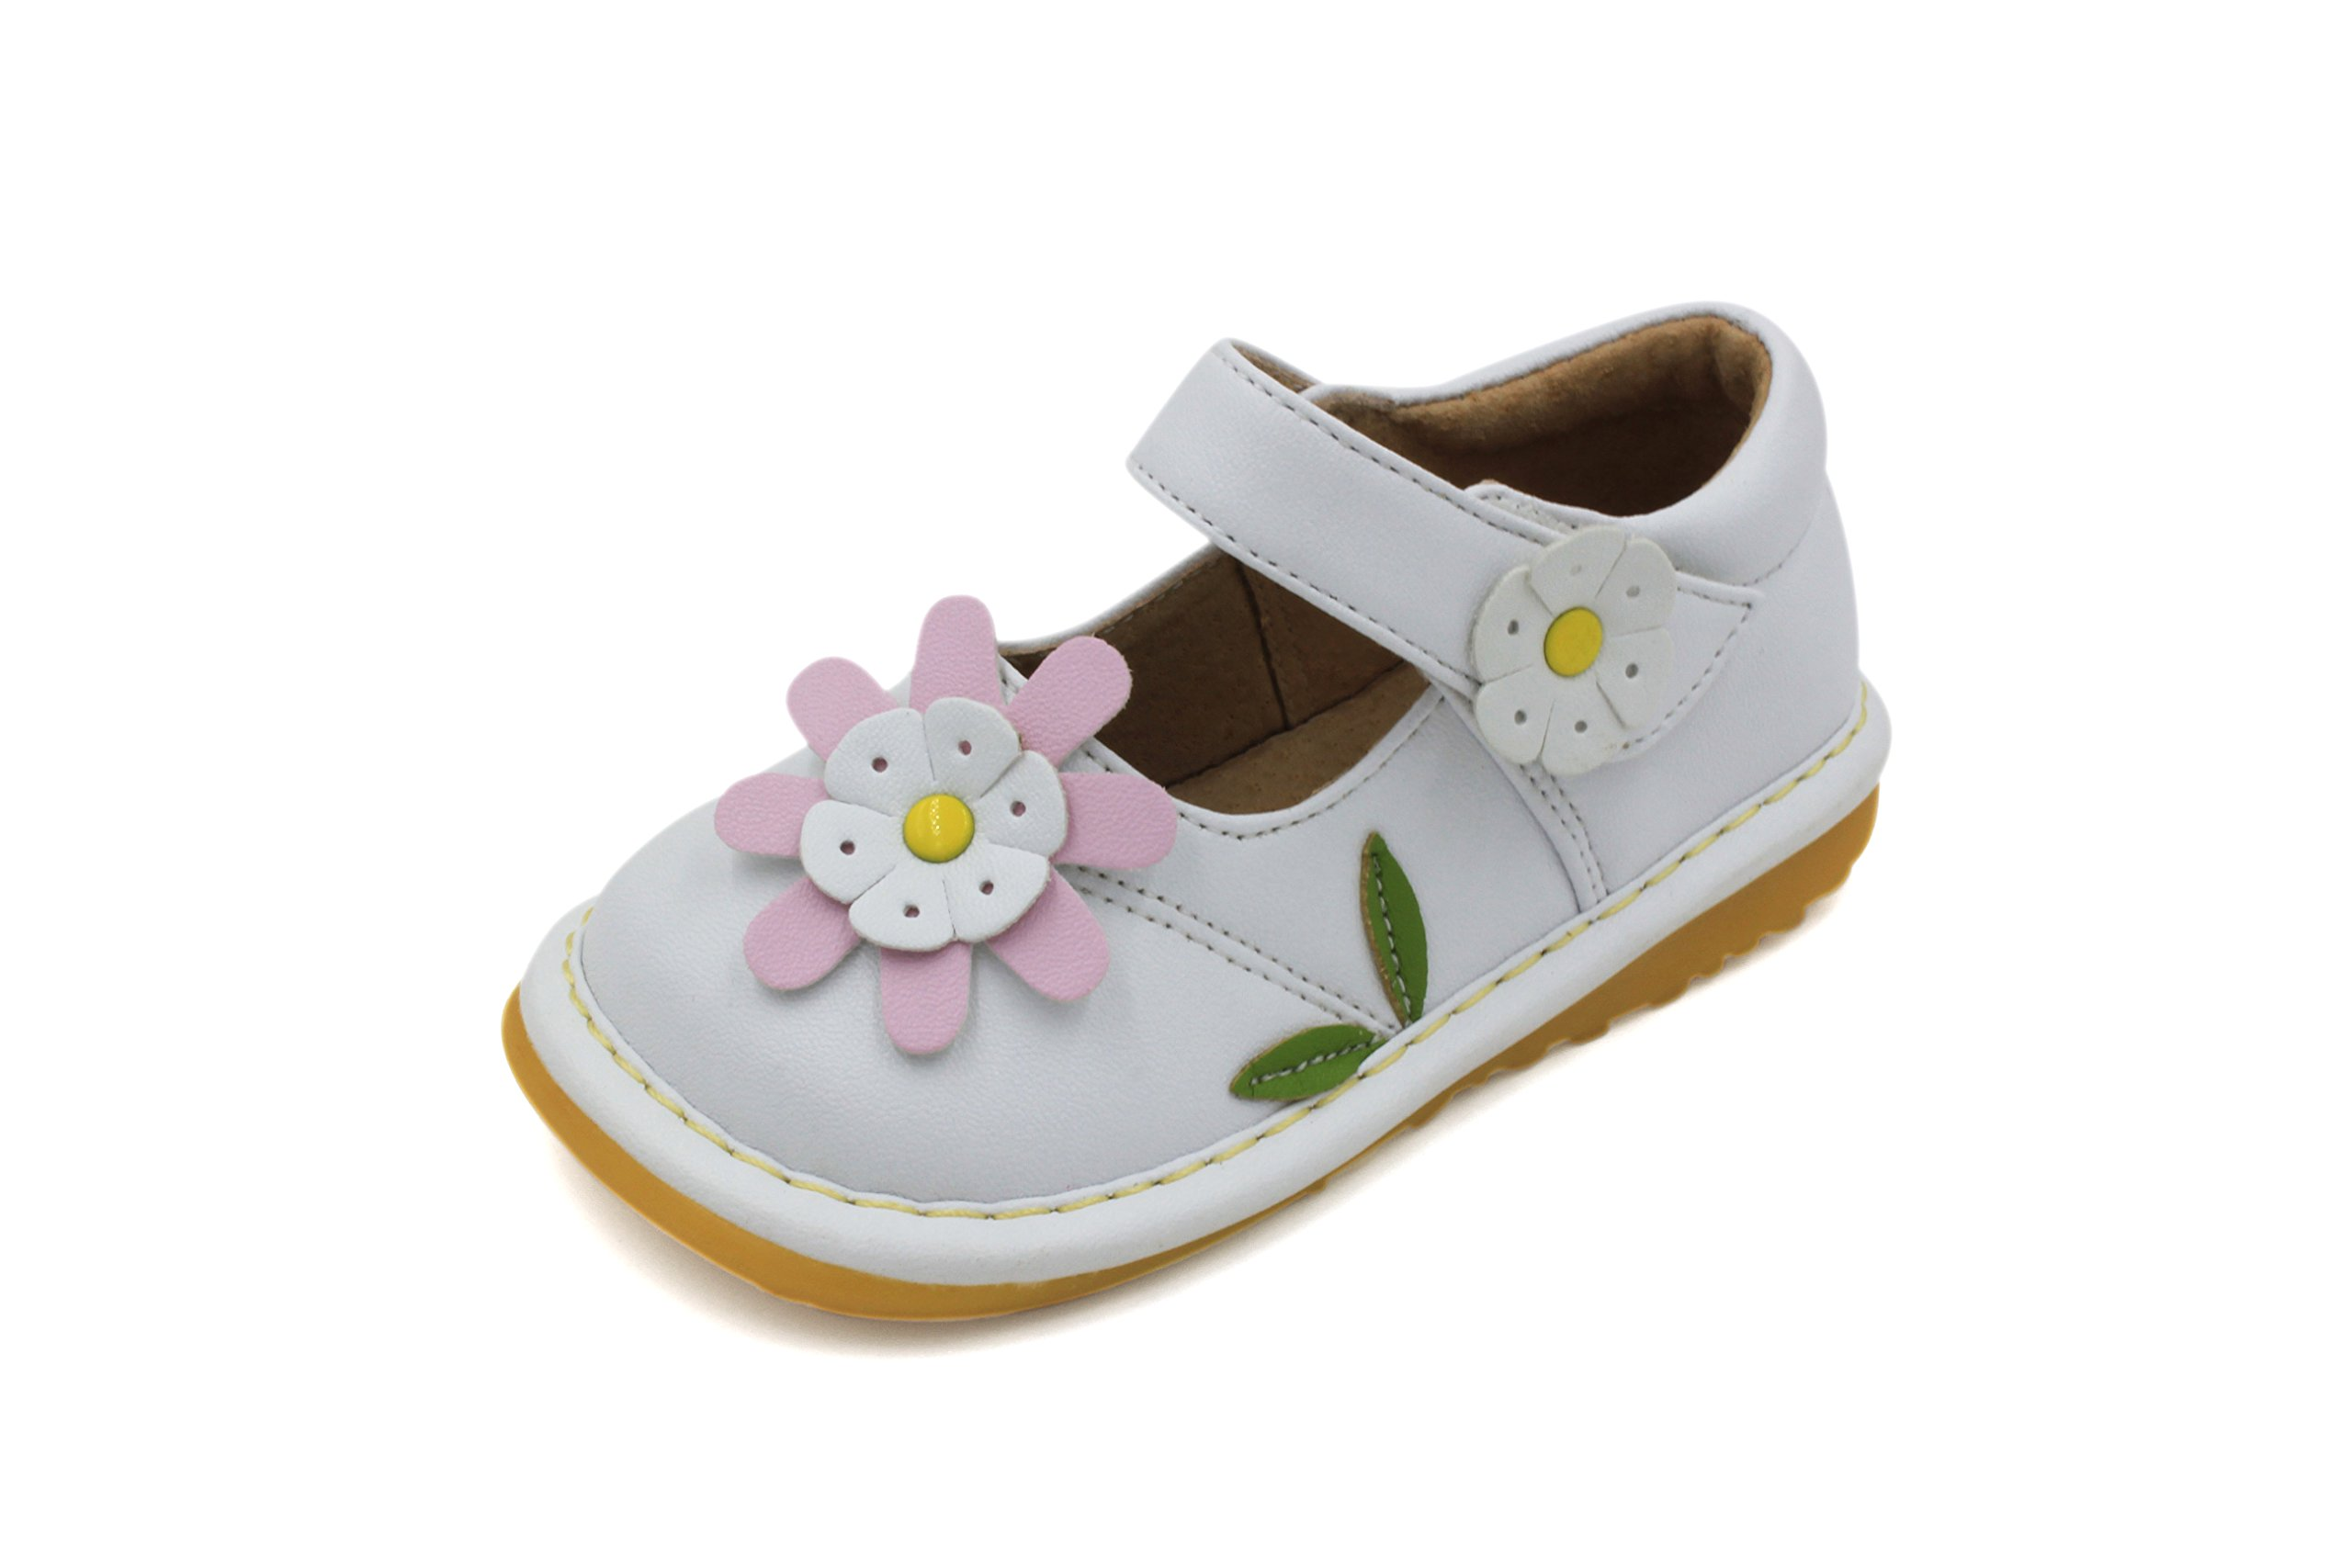 Toddler Shoes | Squeaky White with Light Pink Flower Mary Jane Toddler Girl Squeaky Shoes | Premium Quality (Removable Squeakers)(5)